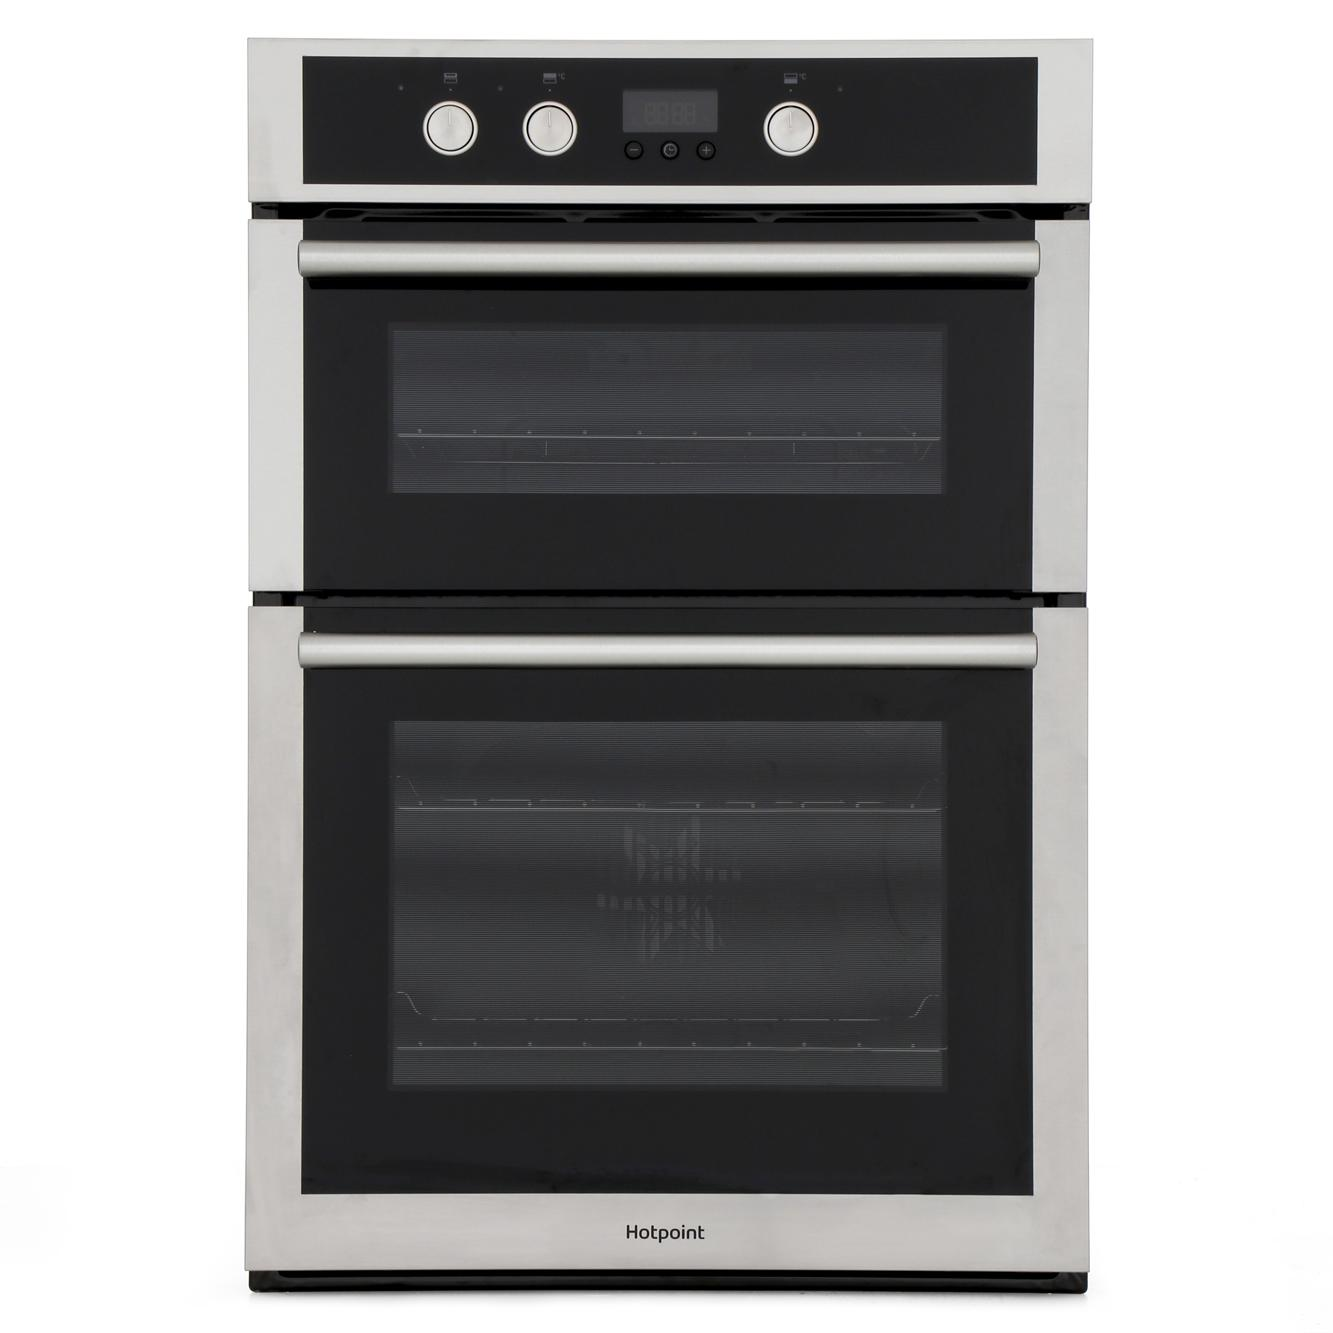 Hotpoint DD4544JIX Double Built In Electric Oven